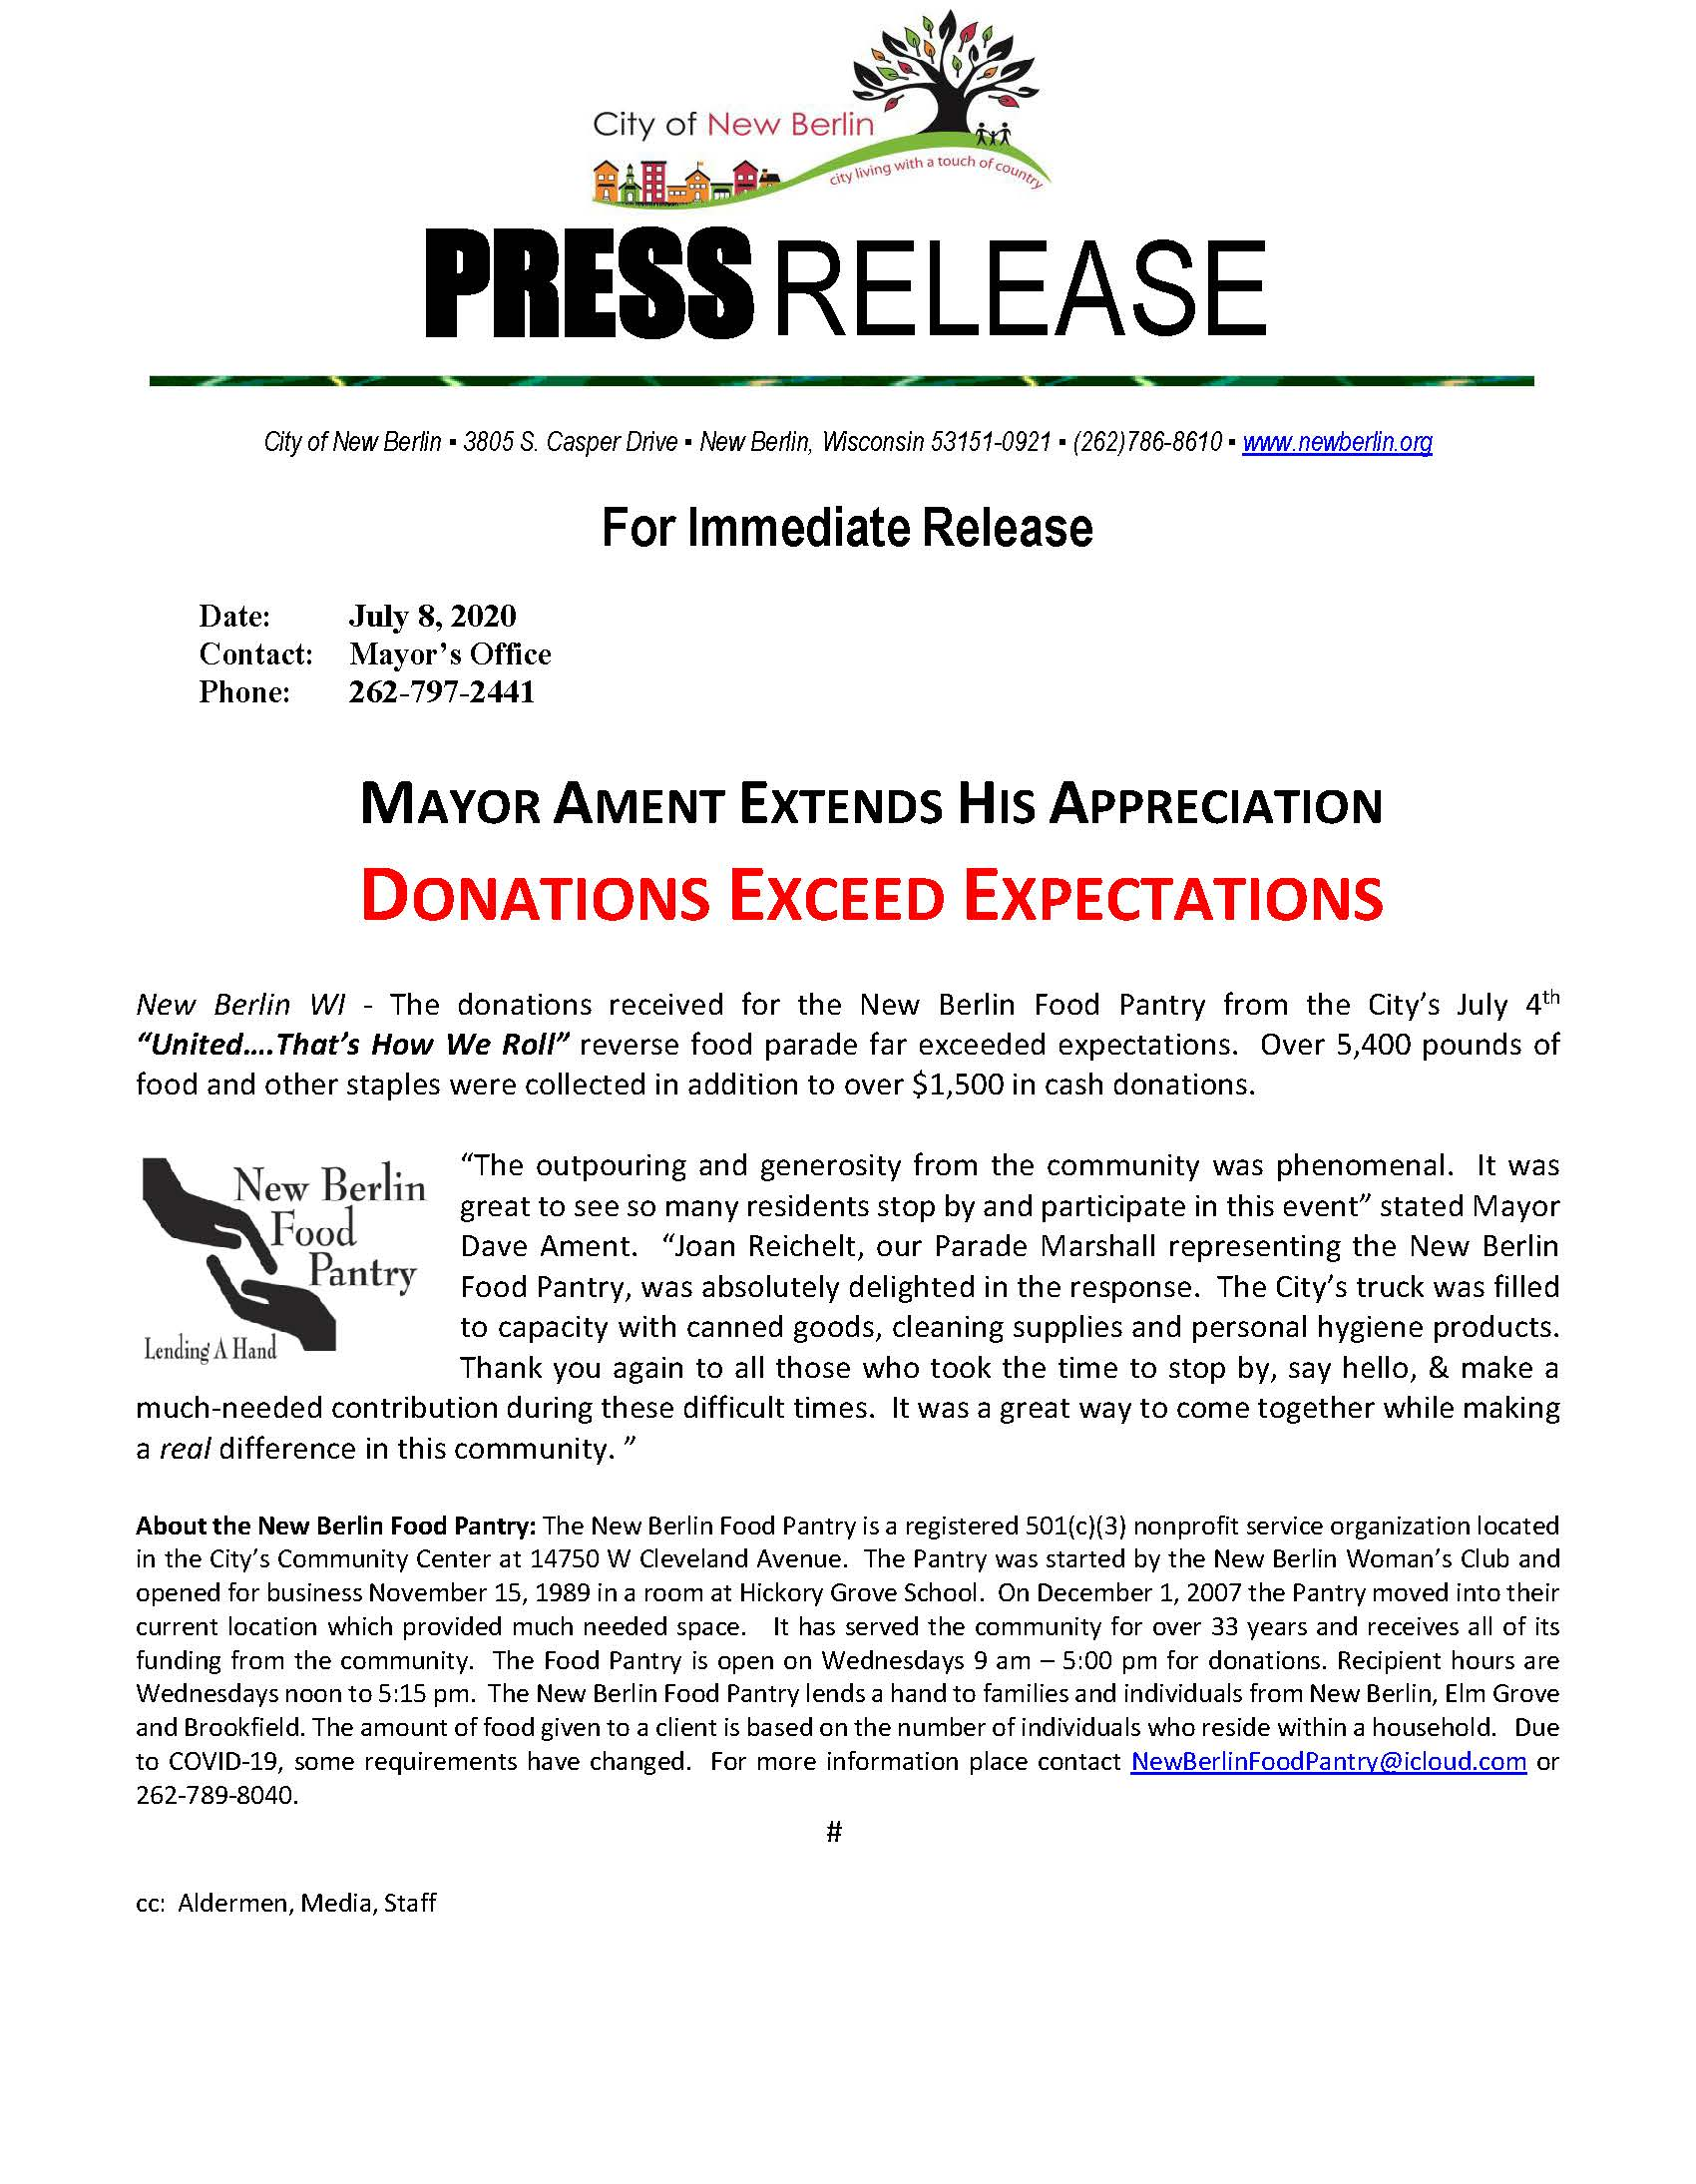 Press Release - 4th of July Thank you to community